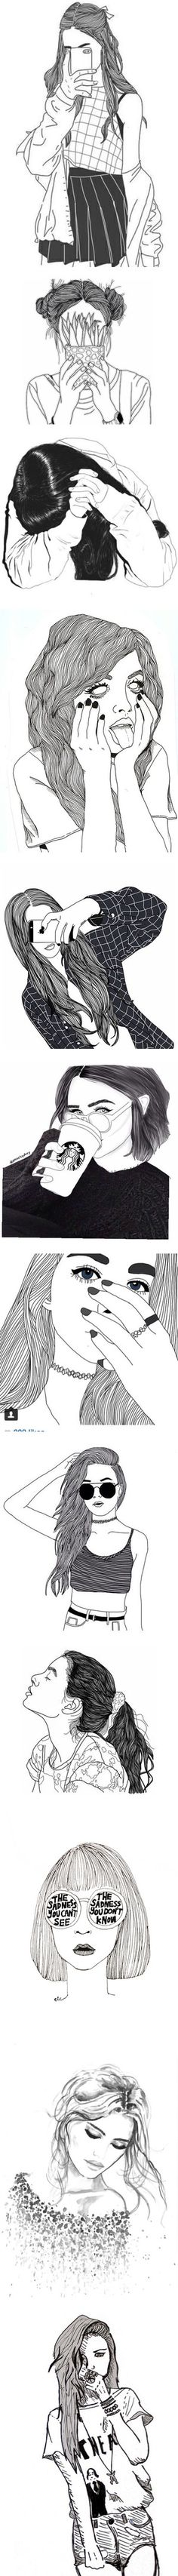 """""""drawings"""" by bananafrog ❤ liked on Polyvore"""